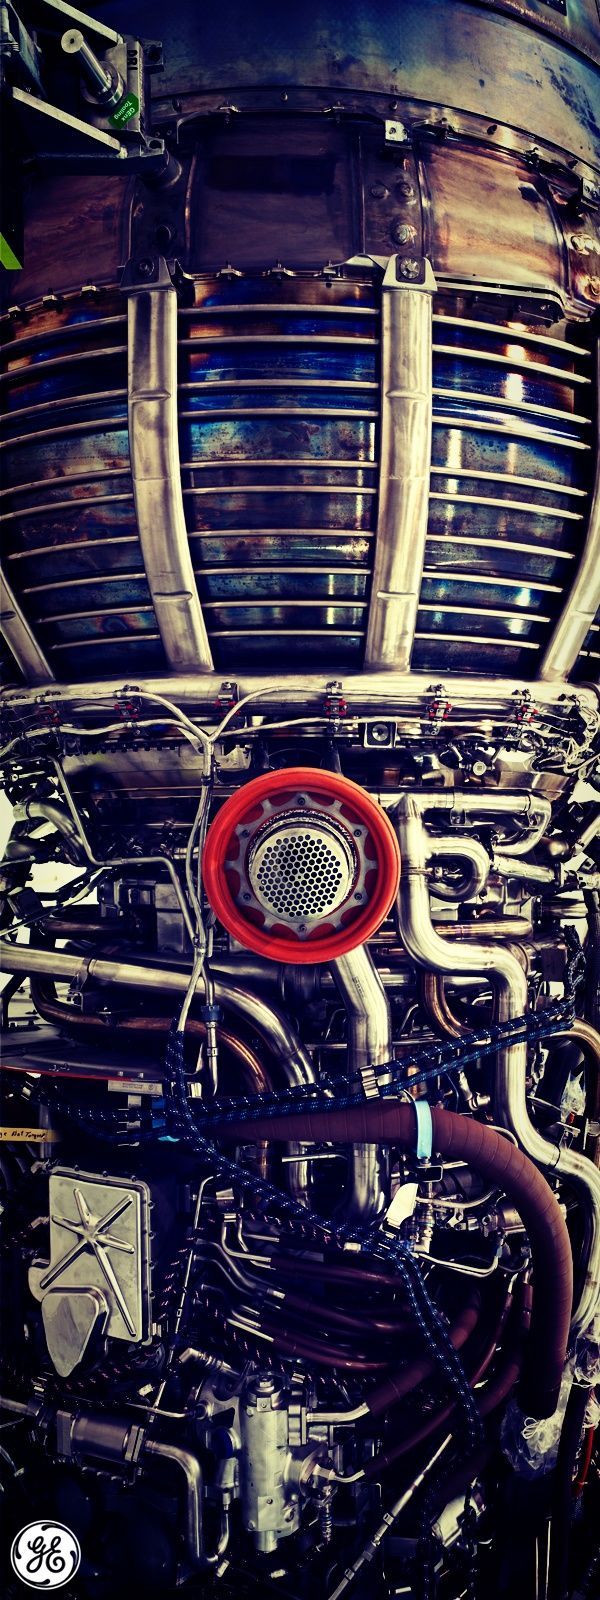 A typical jet engine contains nearly 25,000 individual